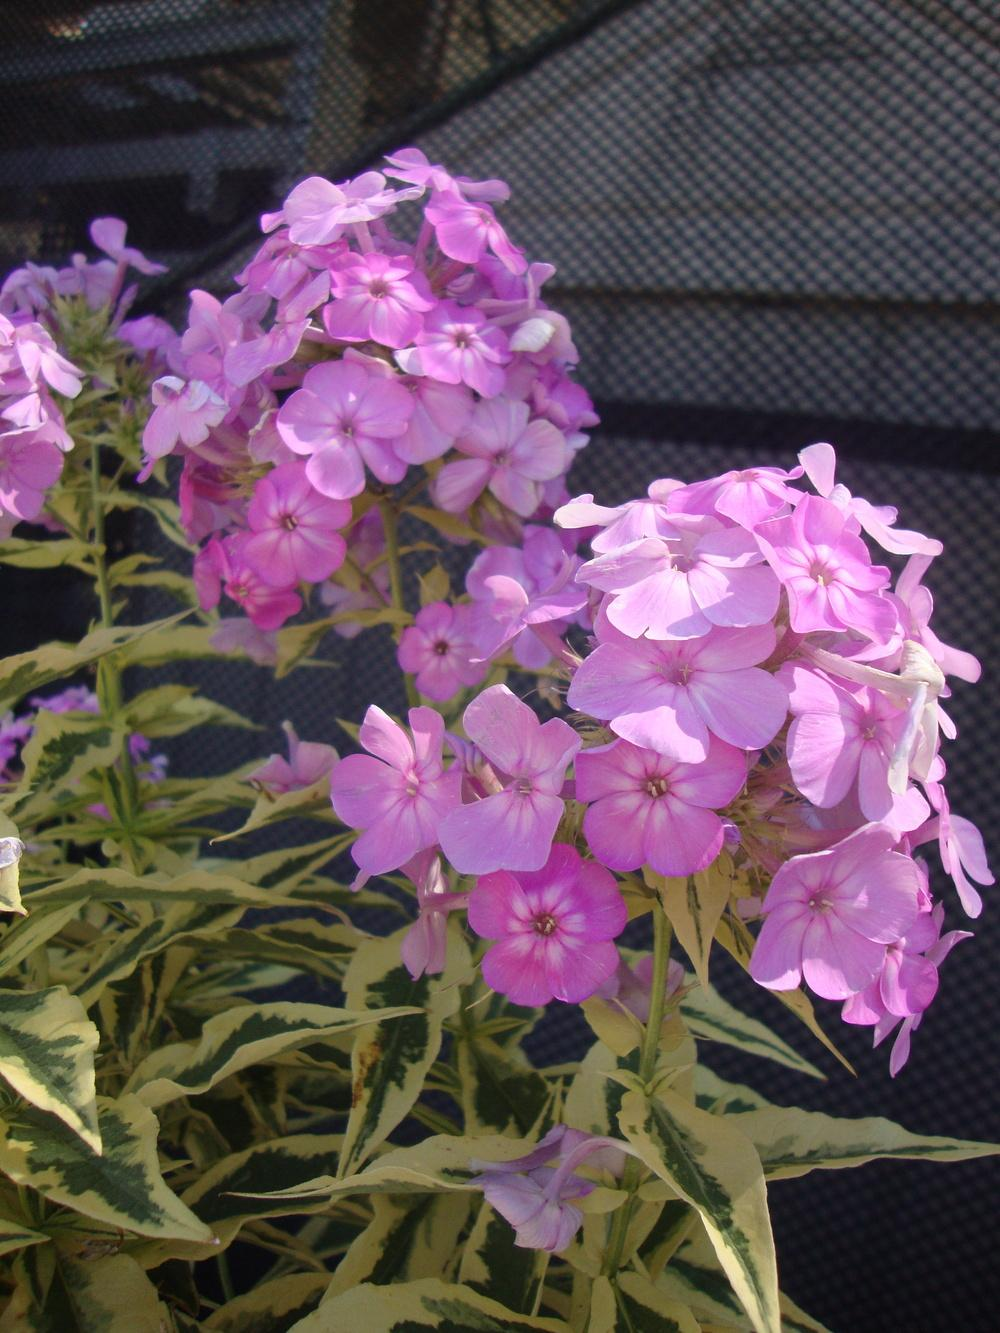 Photo of Tall Garden Phlox (Phlox paniculata 'Shockwave') uploaded by Paul2032